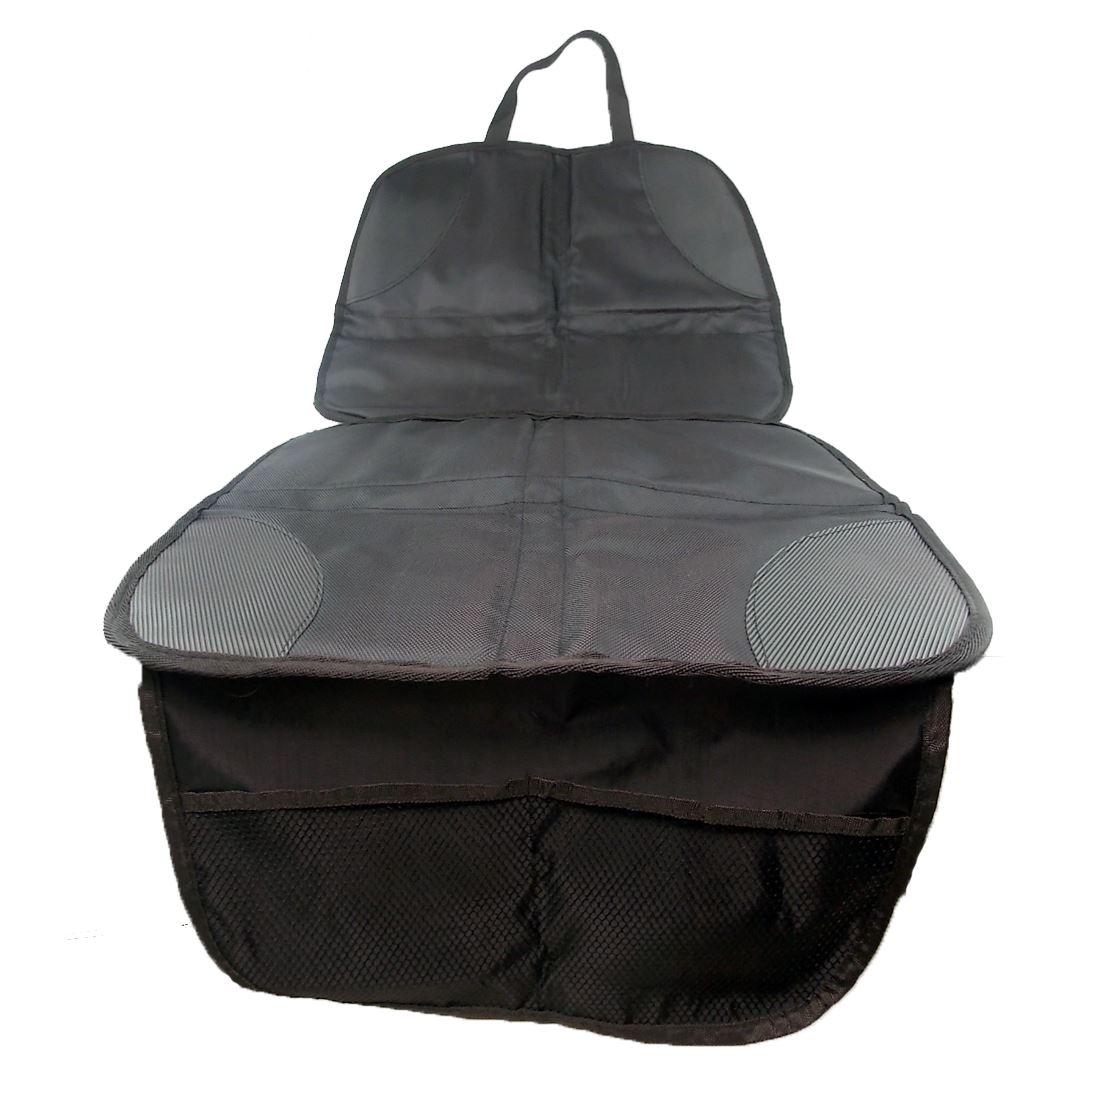 car auto baby infant child seat accessories protector safety cushion cover uk ebay. Black Bedroom Furniture Sets. Home Design Ideas